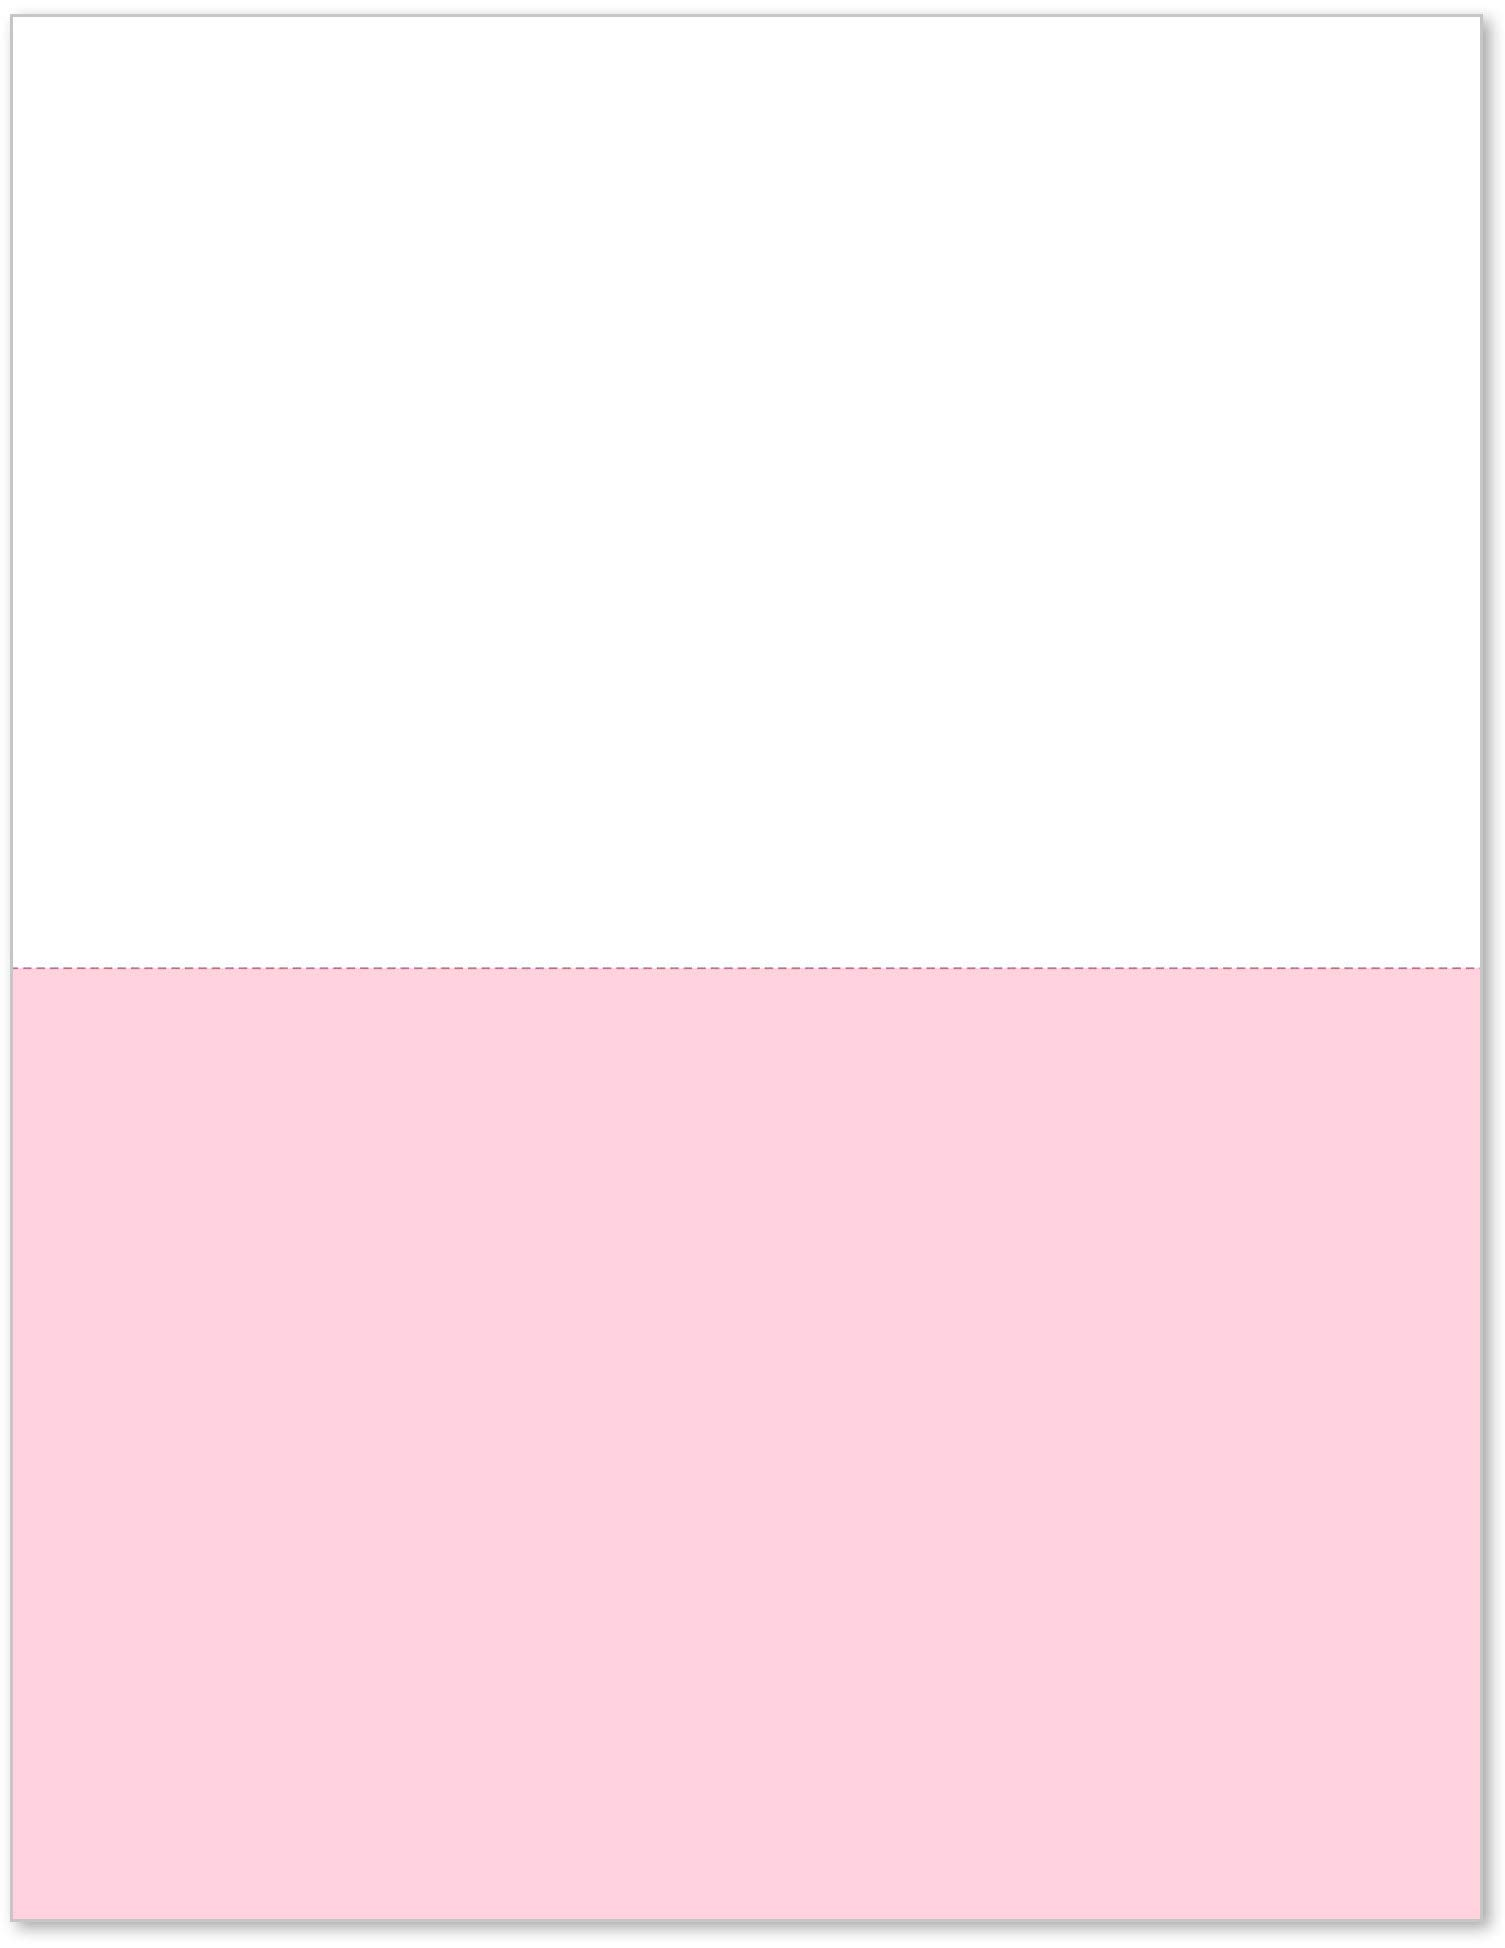 8-1/2 x 11'' Letter Size 2 Color Perforated Paper (2500 White/Pink)